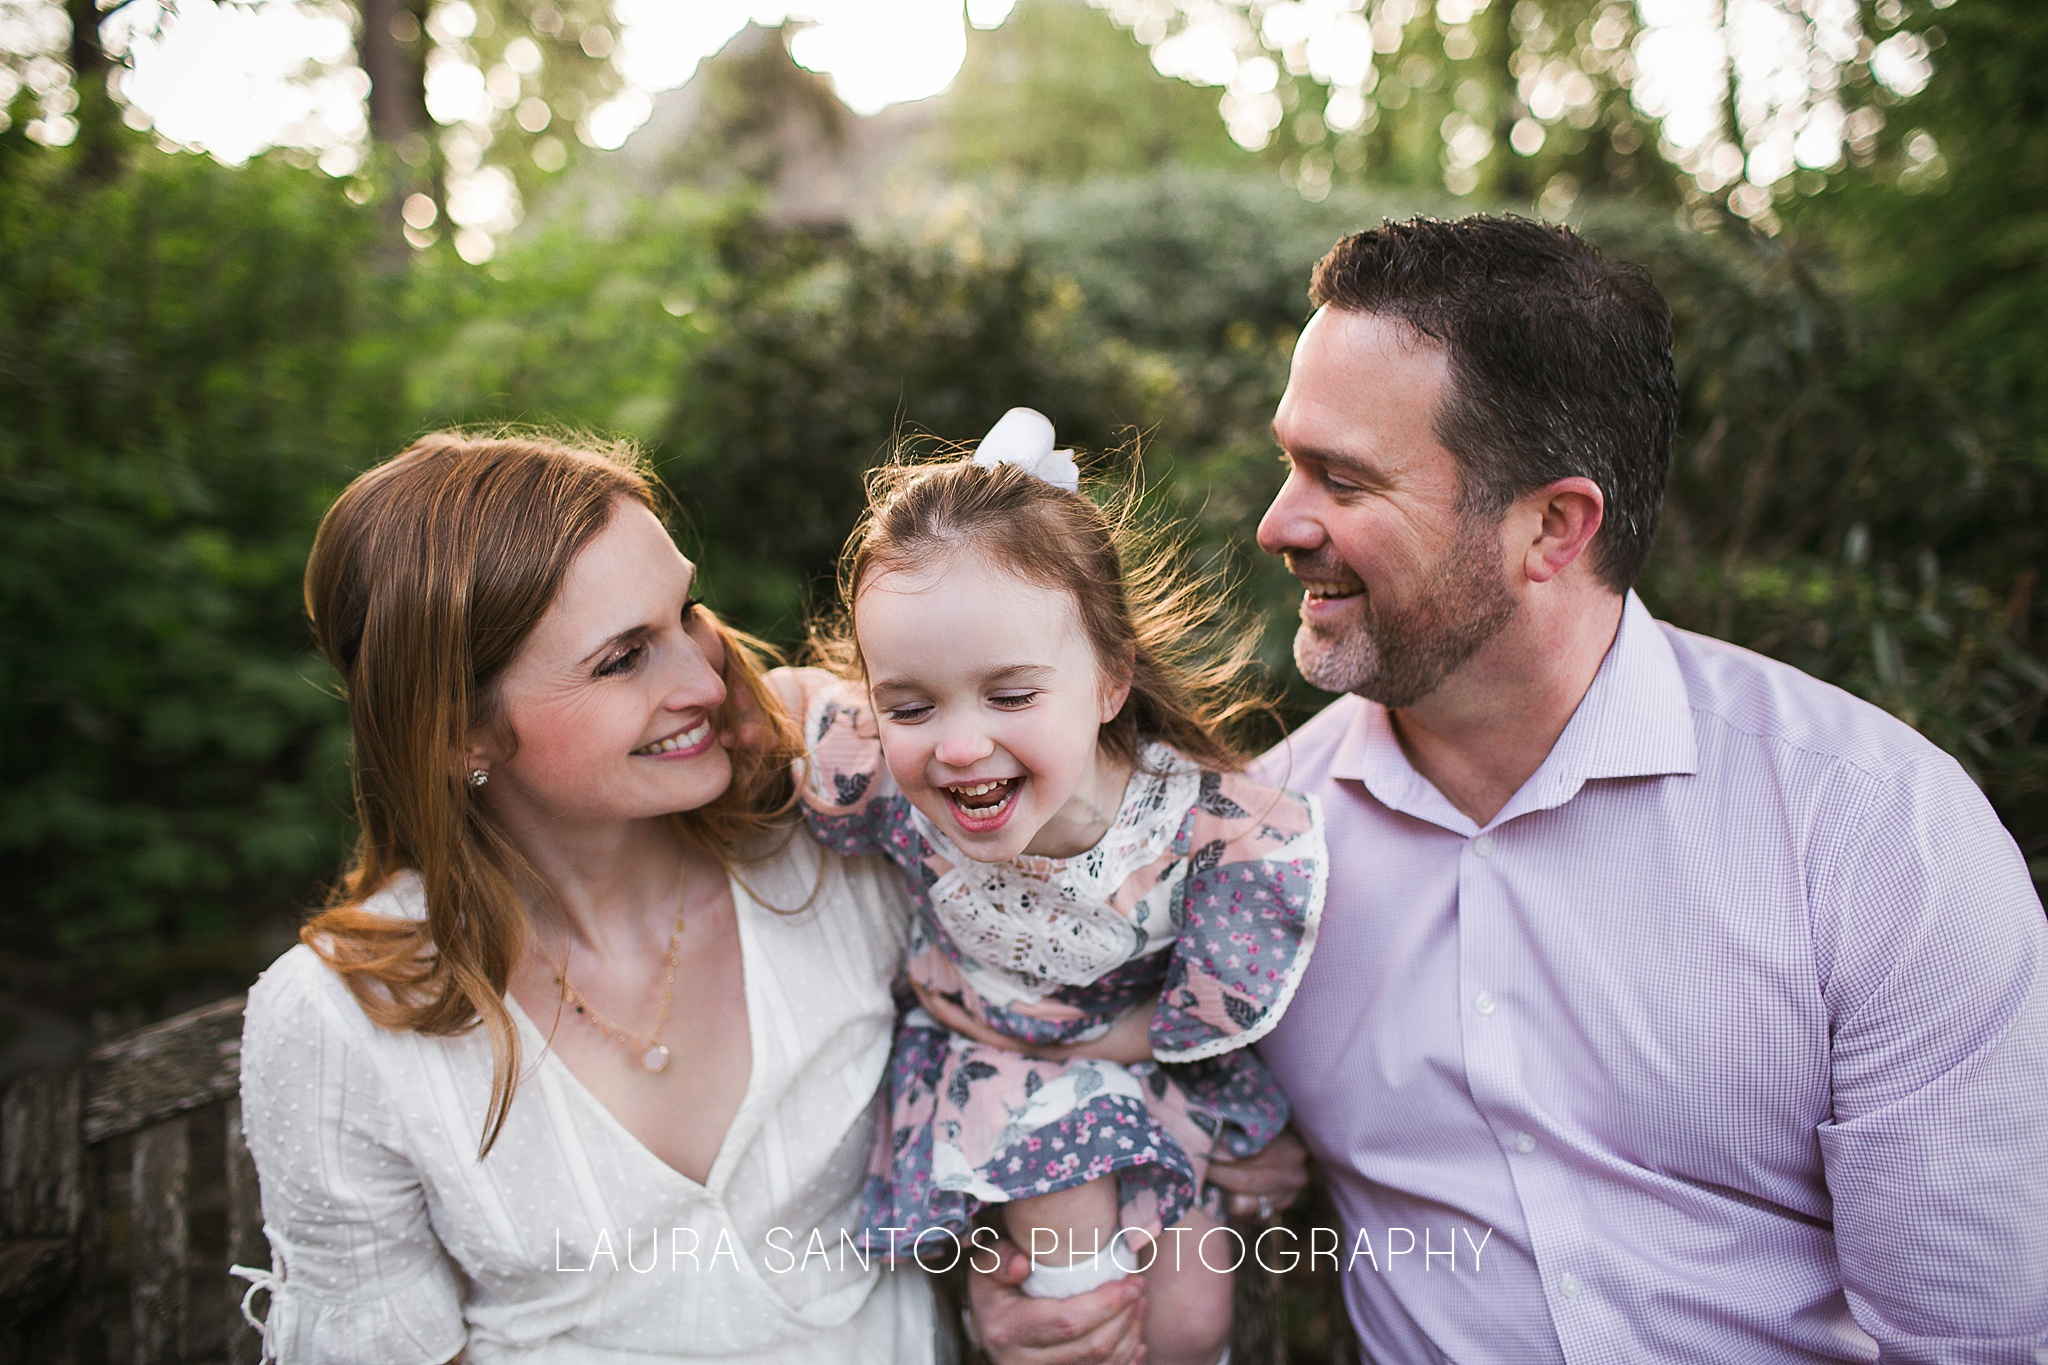 Laura Santos Photography Portland Oregon Family Photographer_0911.jpg